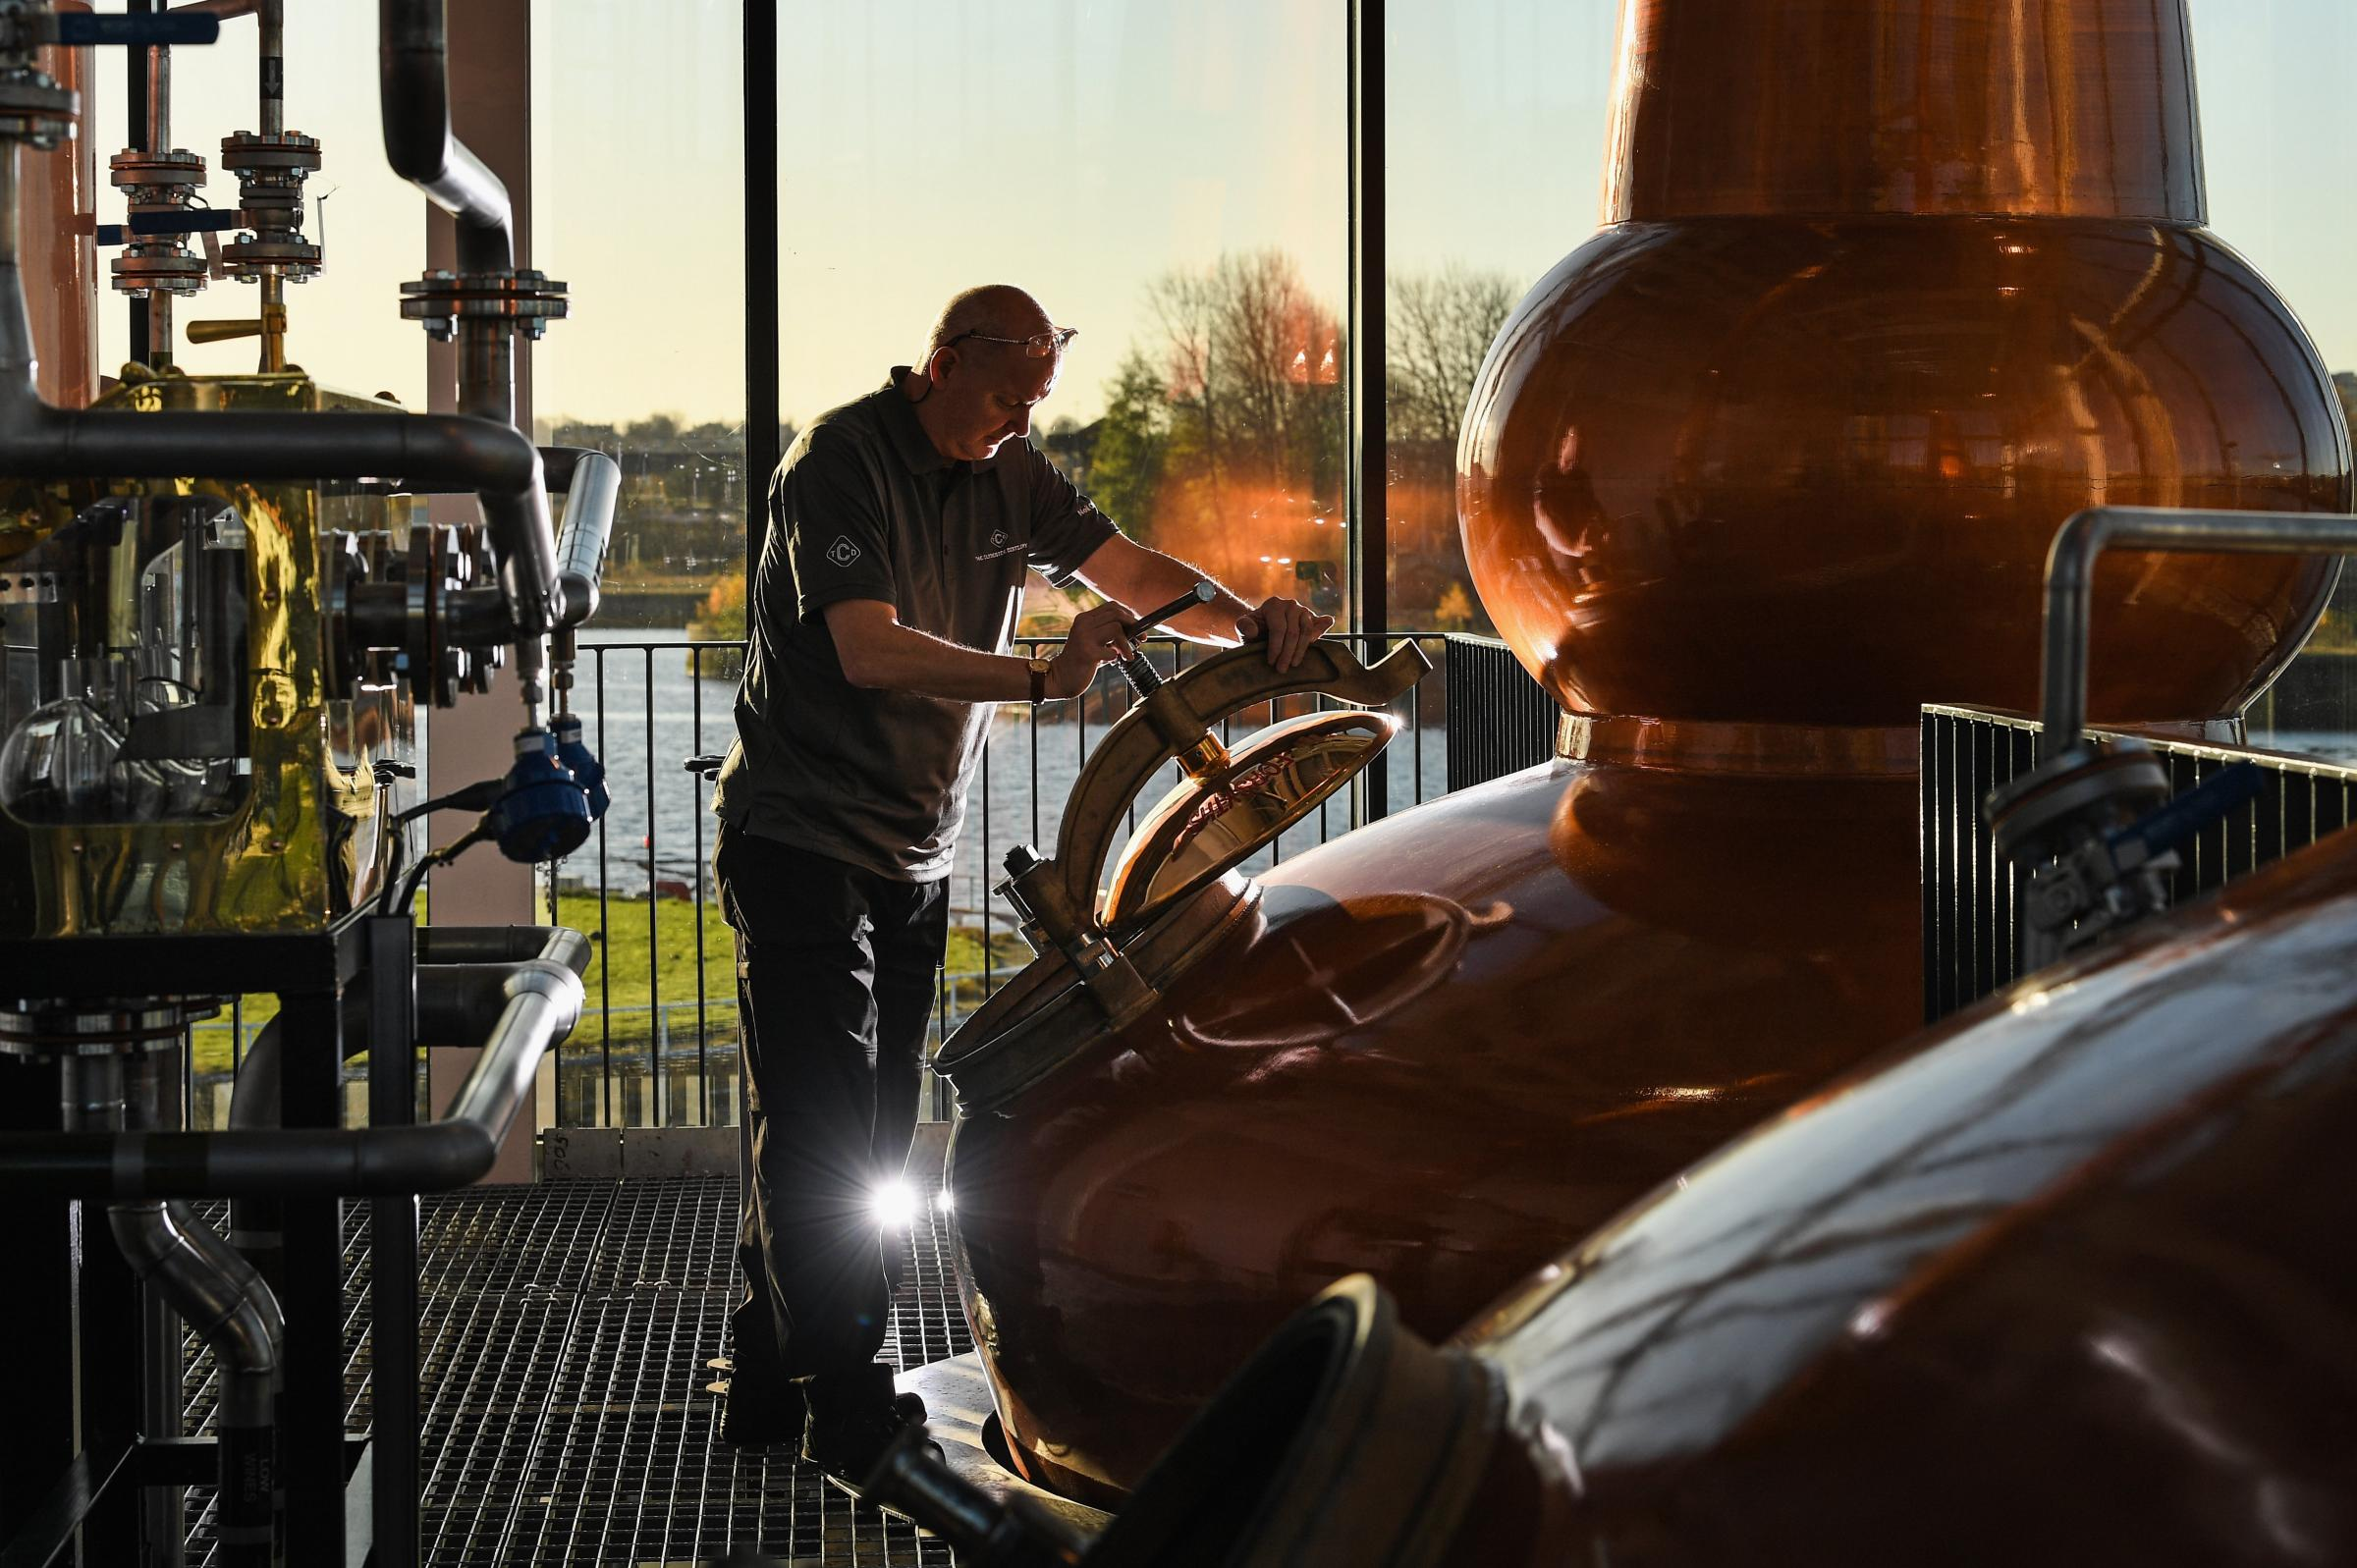 The new Clydeside Distillery opened in November 2017